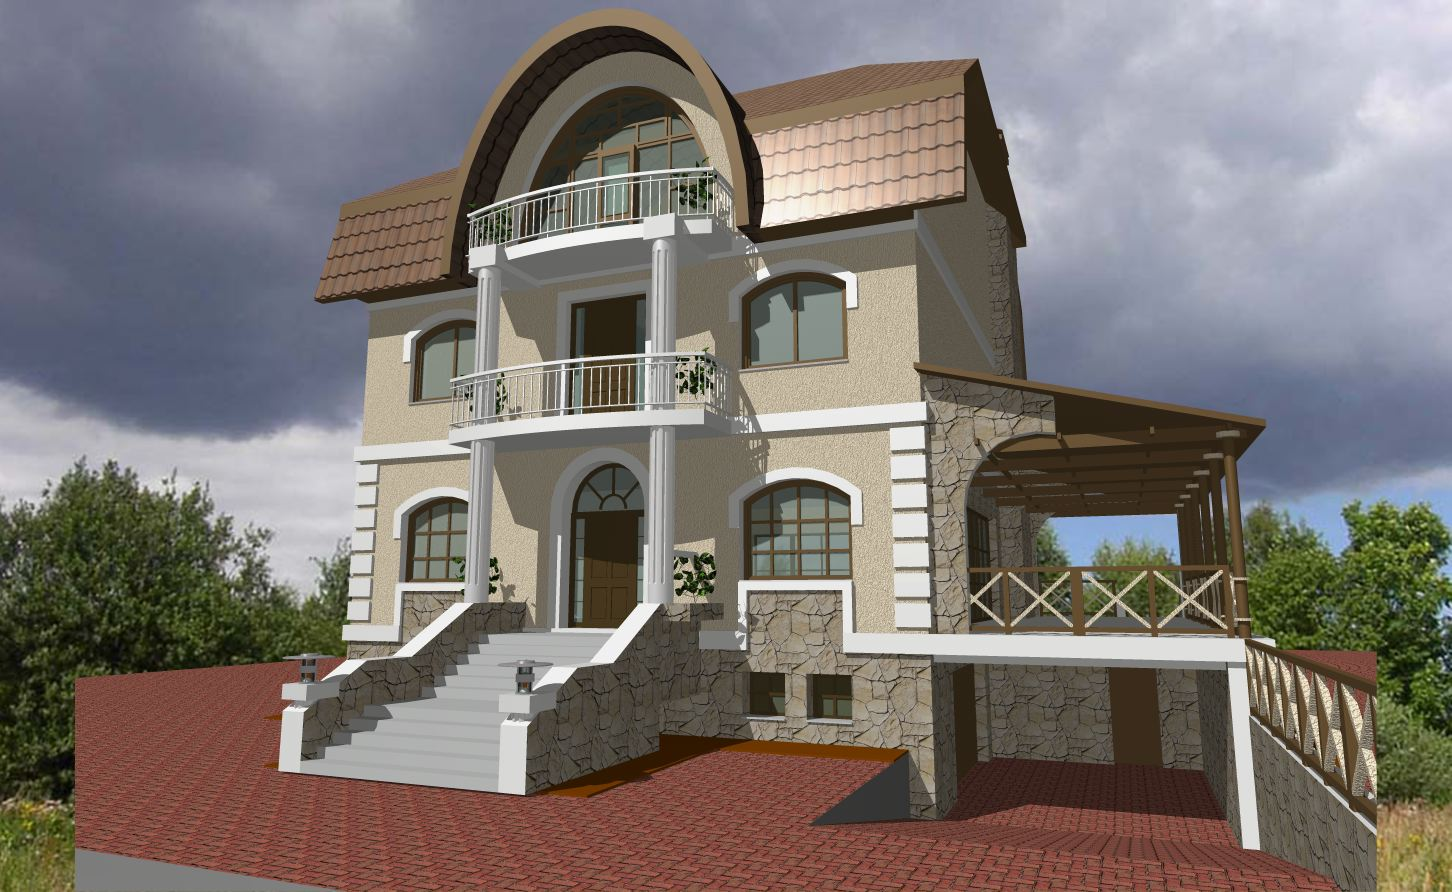 Foundation dezin decor exterior elevations view 39 s for Best house exterior designs